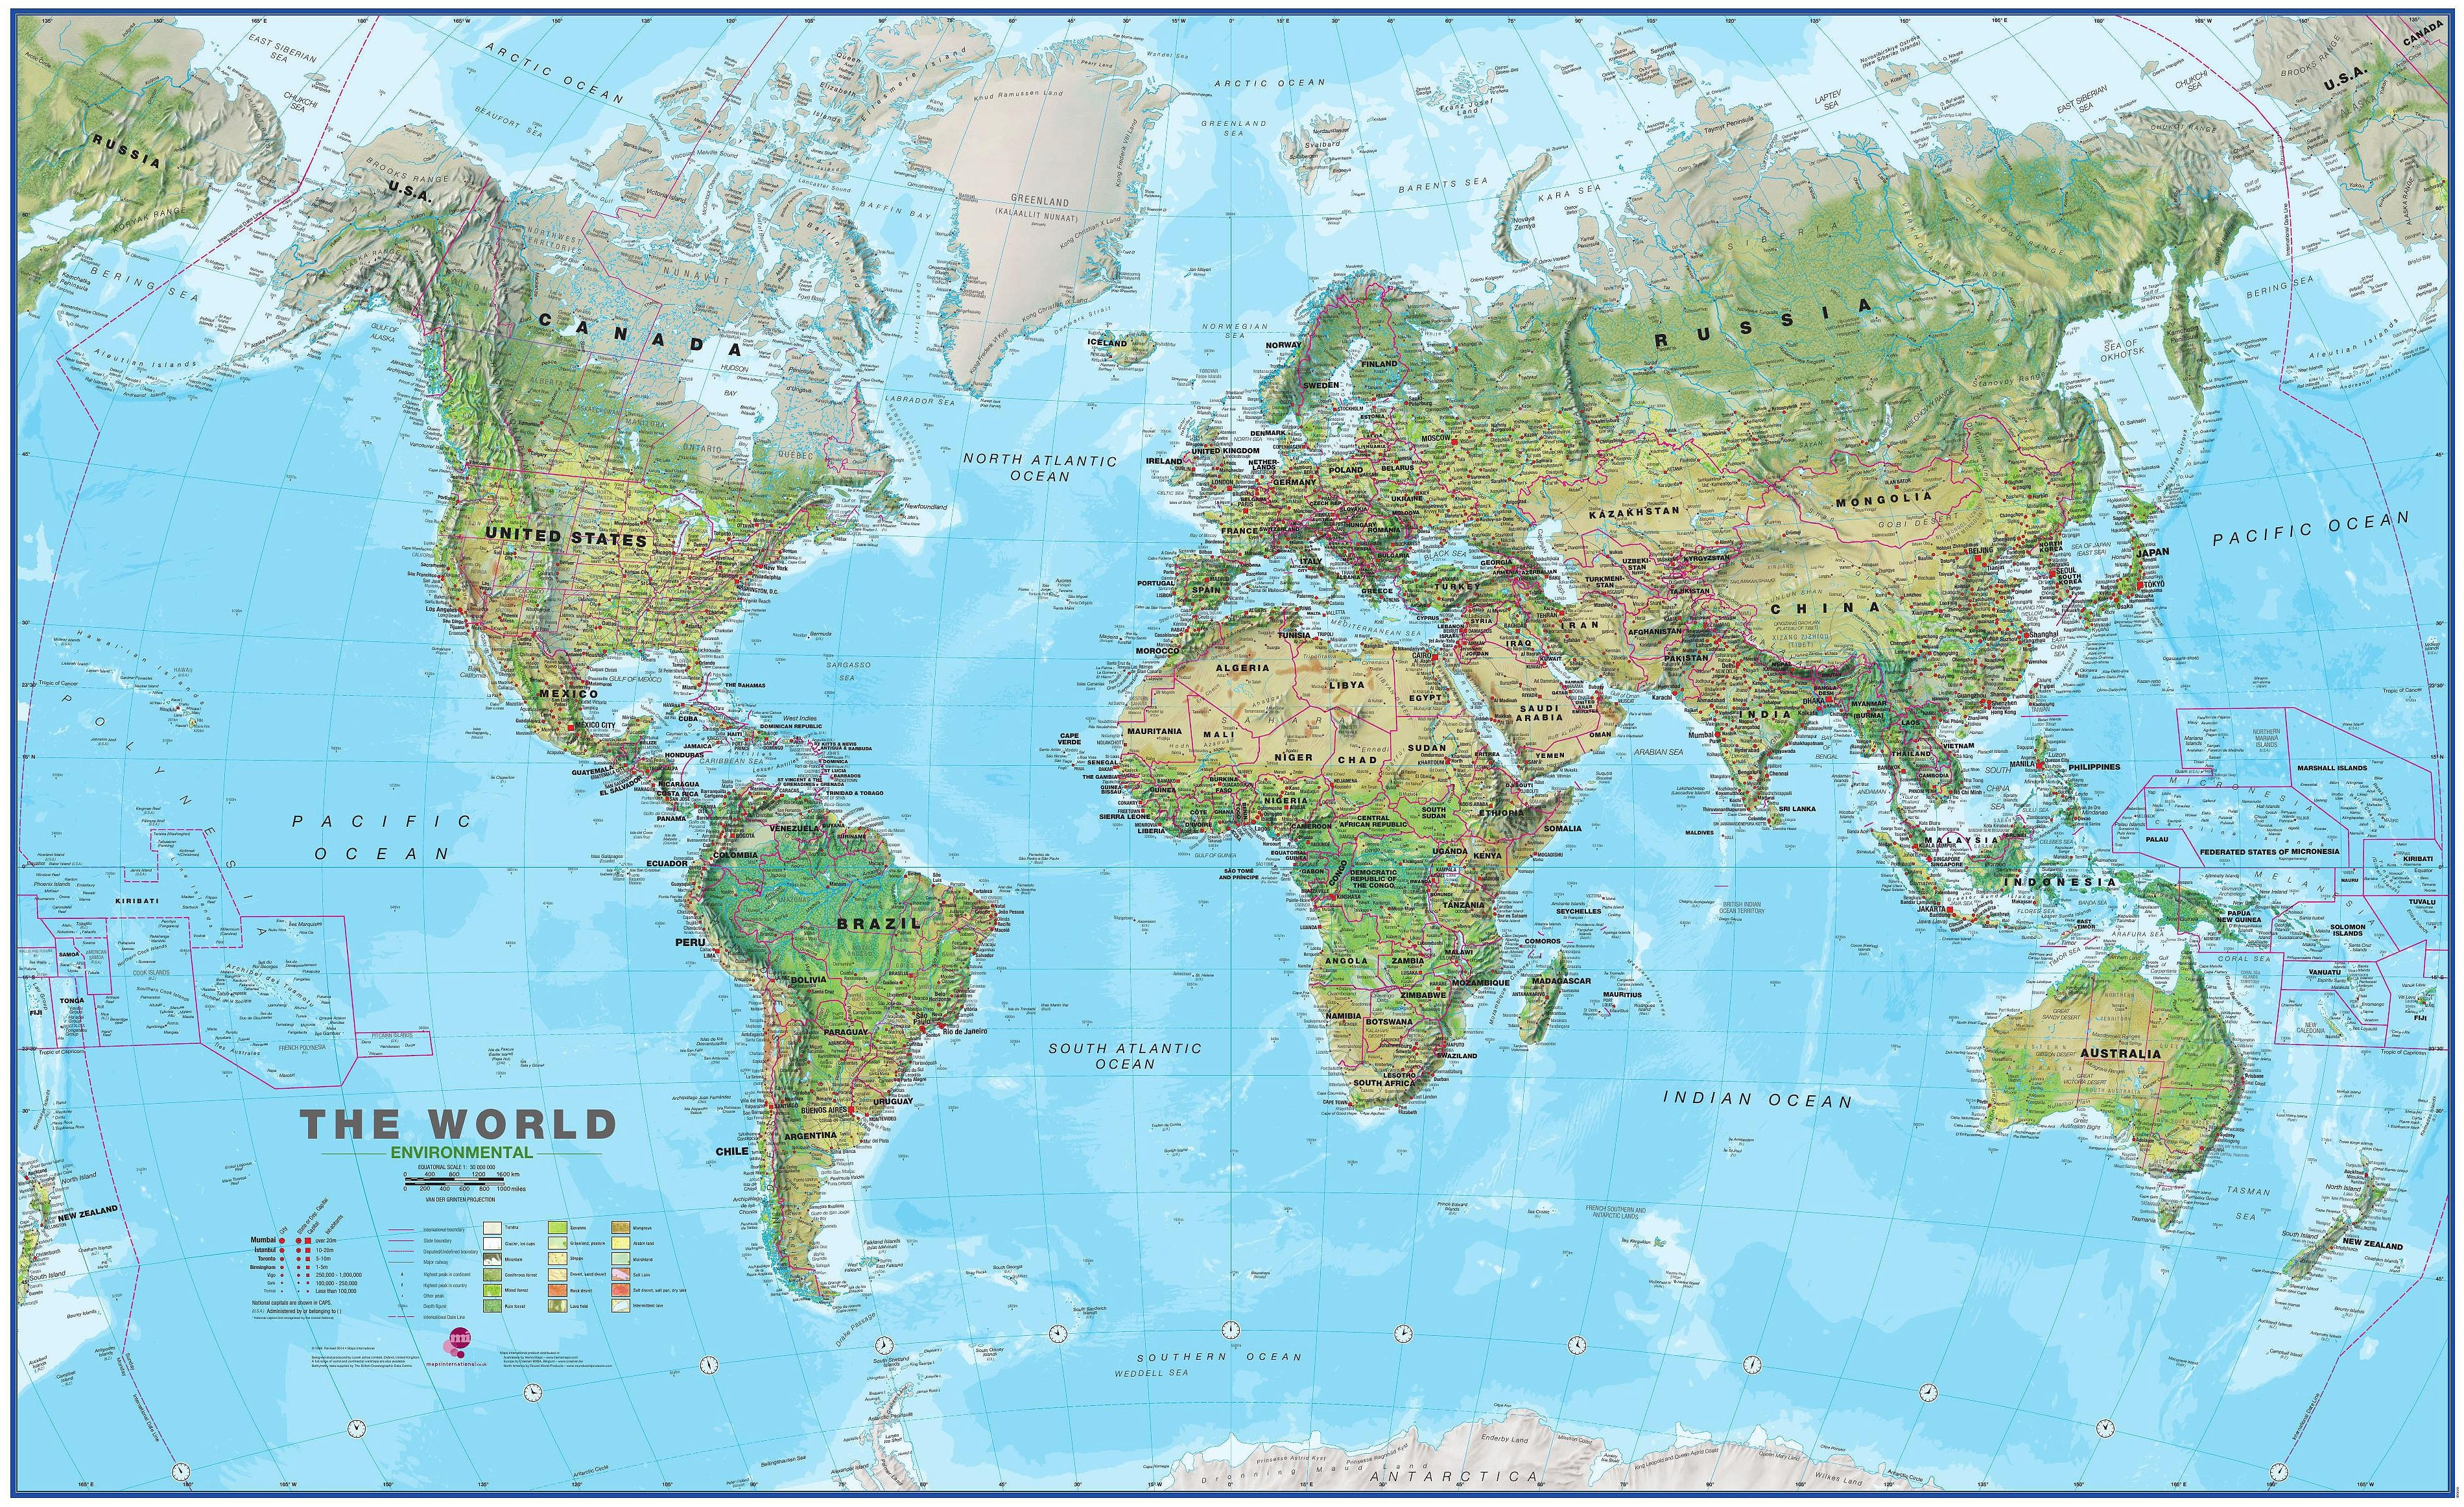 Most Detailed World Map.Physical World Map Environmental 1 30 Mio 136 X 82cm Physical